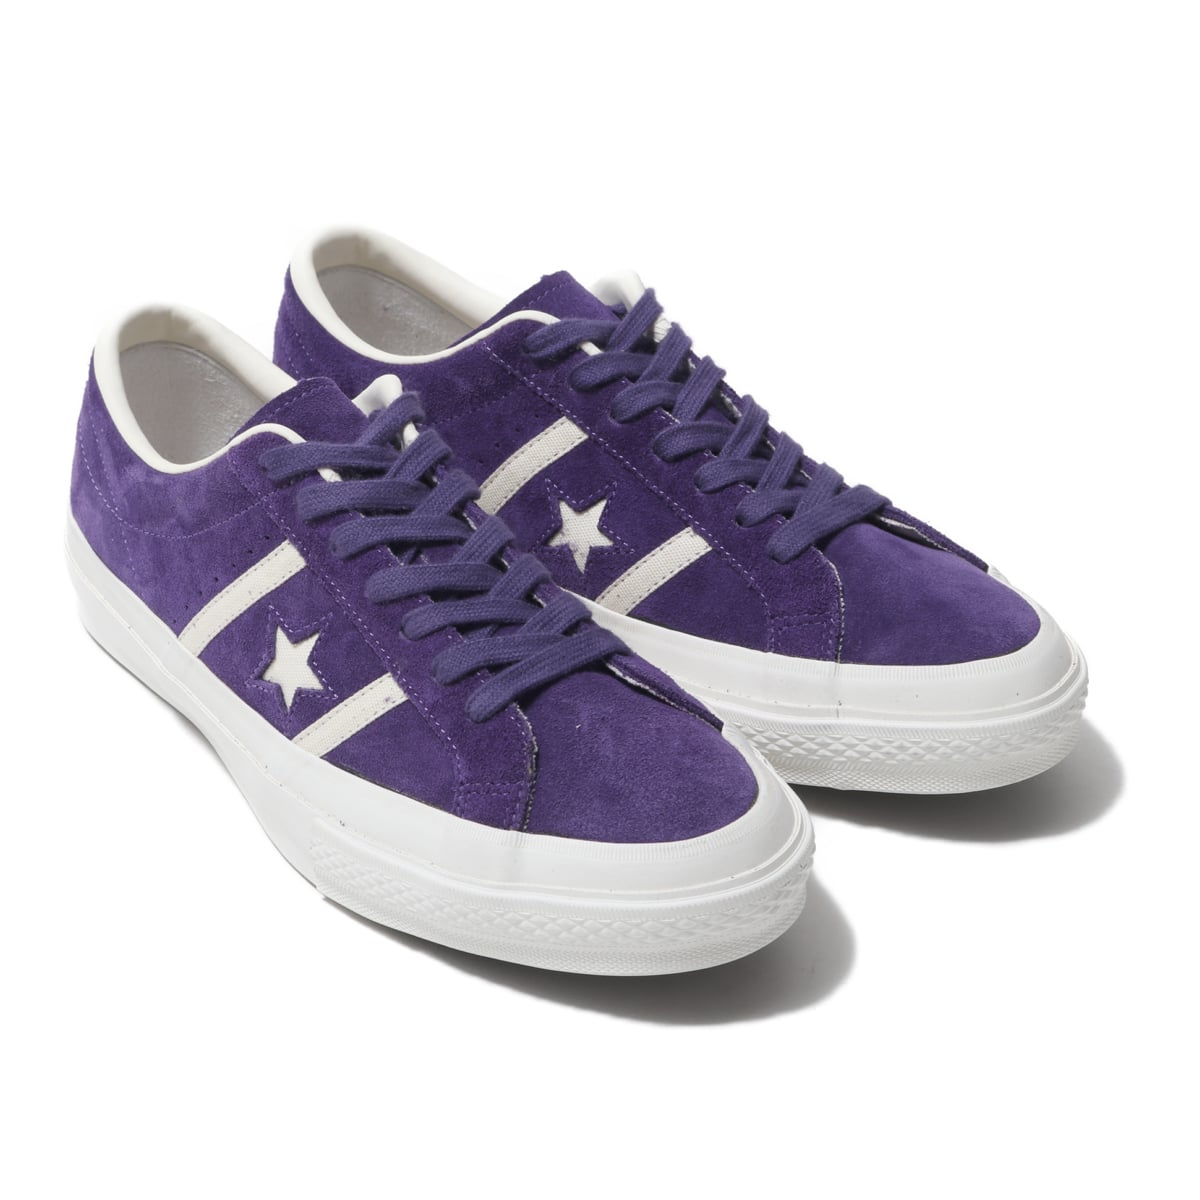 CONVERSE STAR&BARS SUEDE PURPLE 19FA-S_photo_large